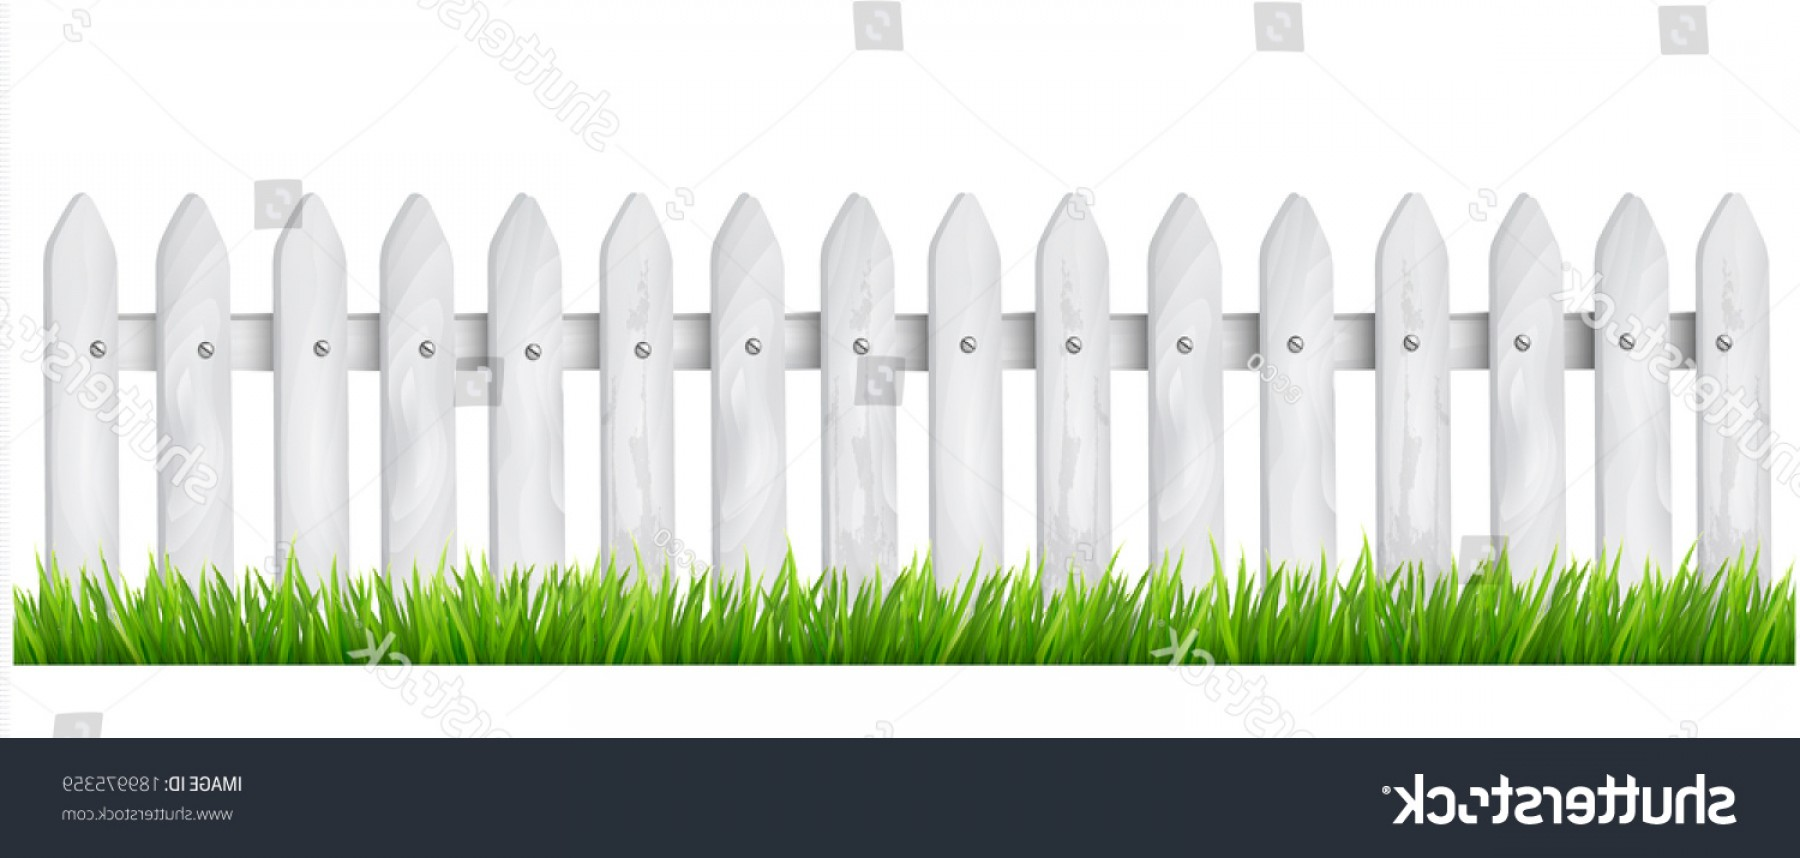 Outdoor Fence Vector: Background White Wooden Fence Grass Vector